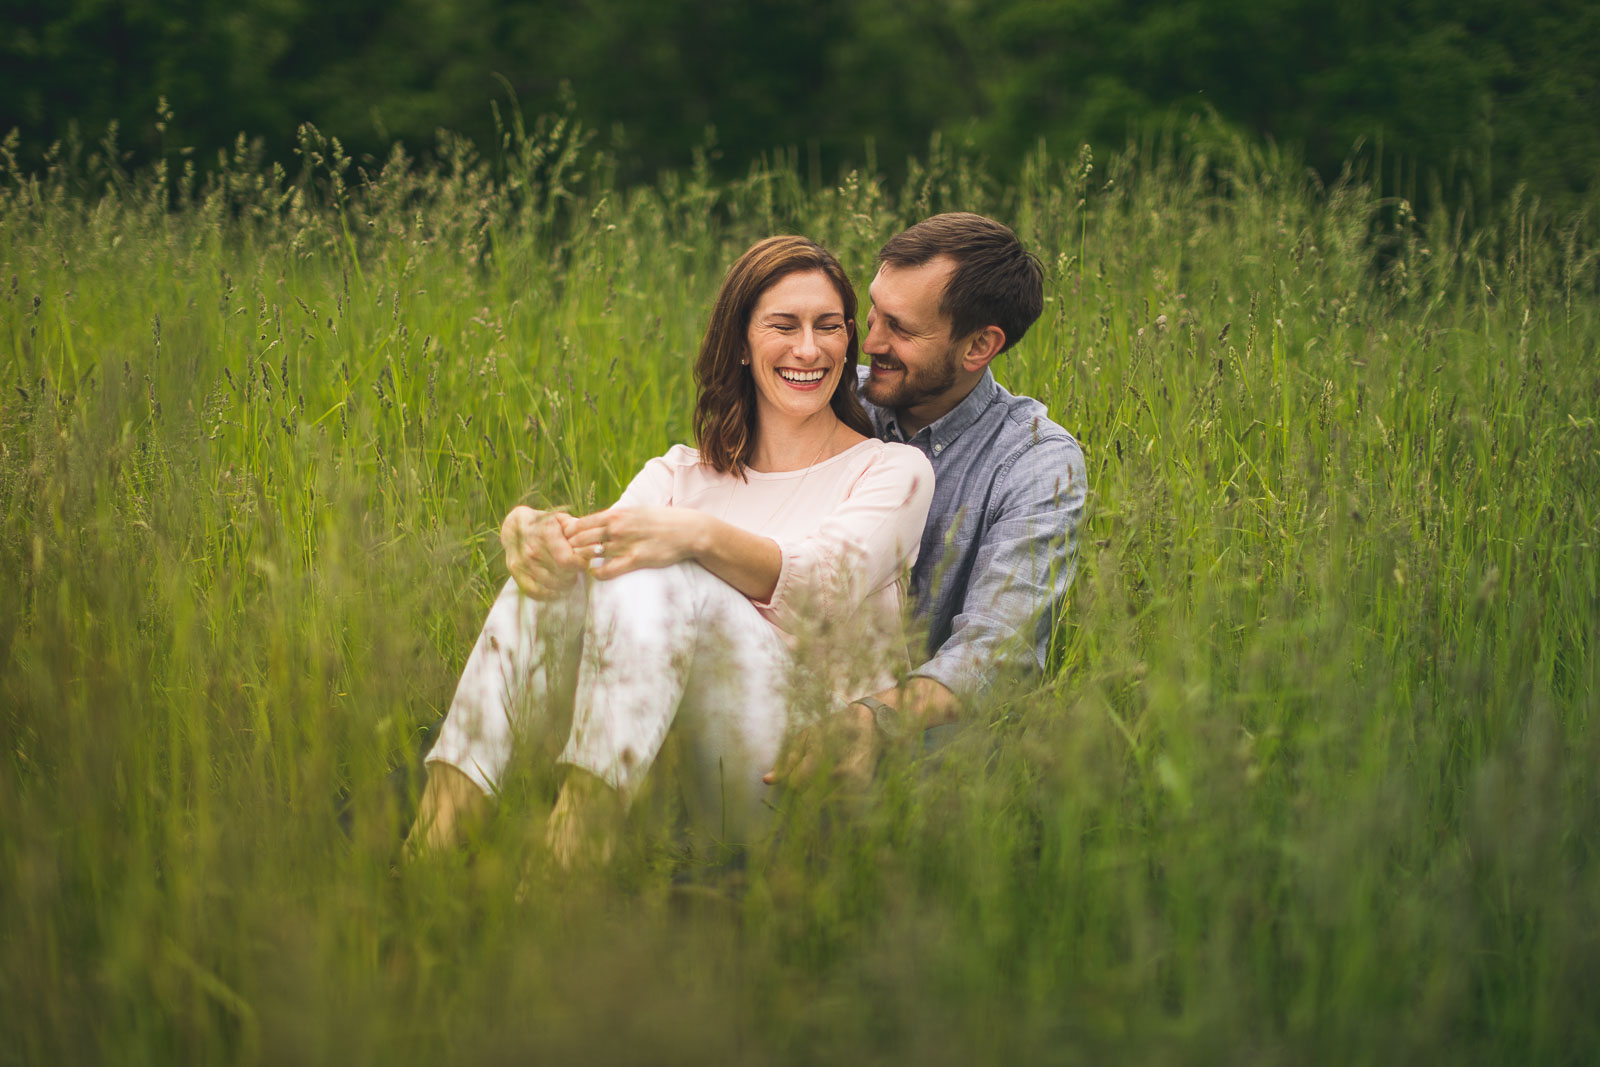 Morristown Engagement Photographer